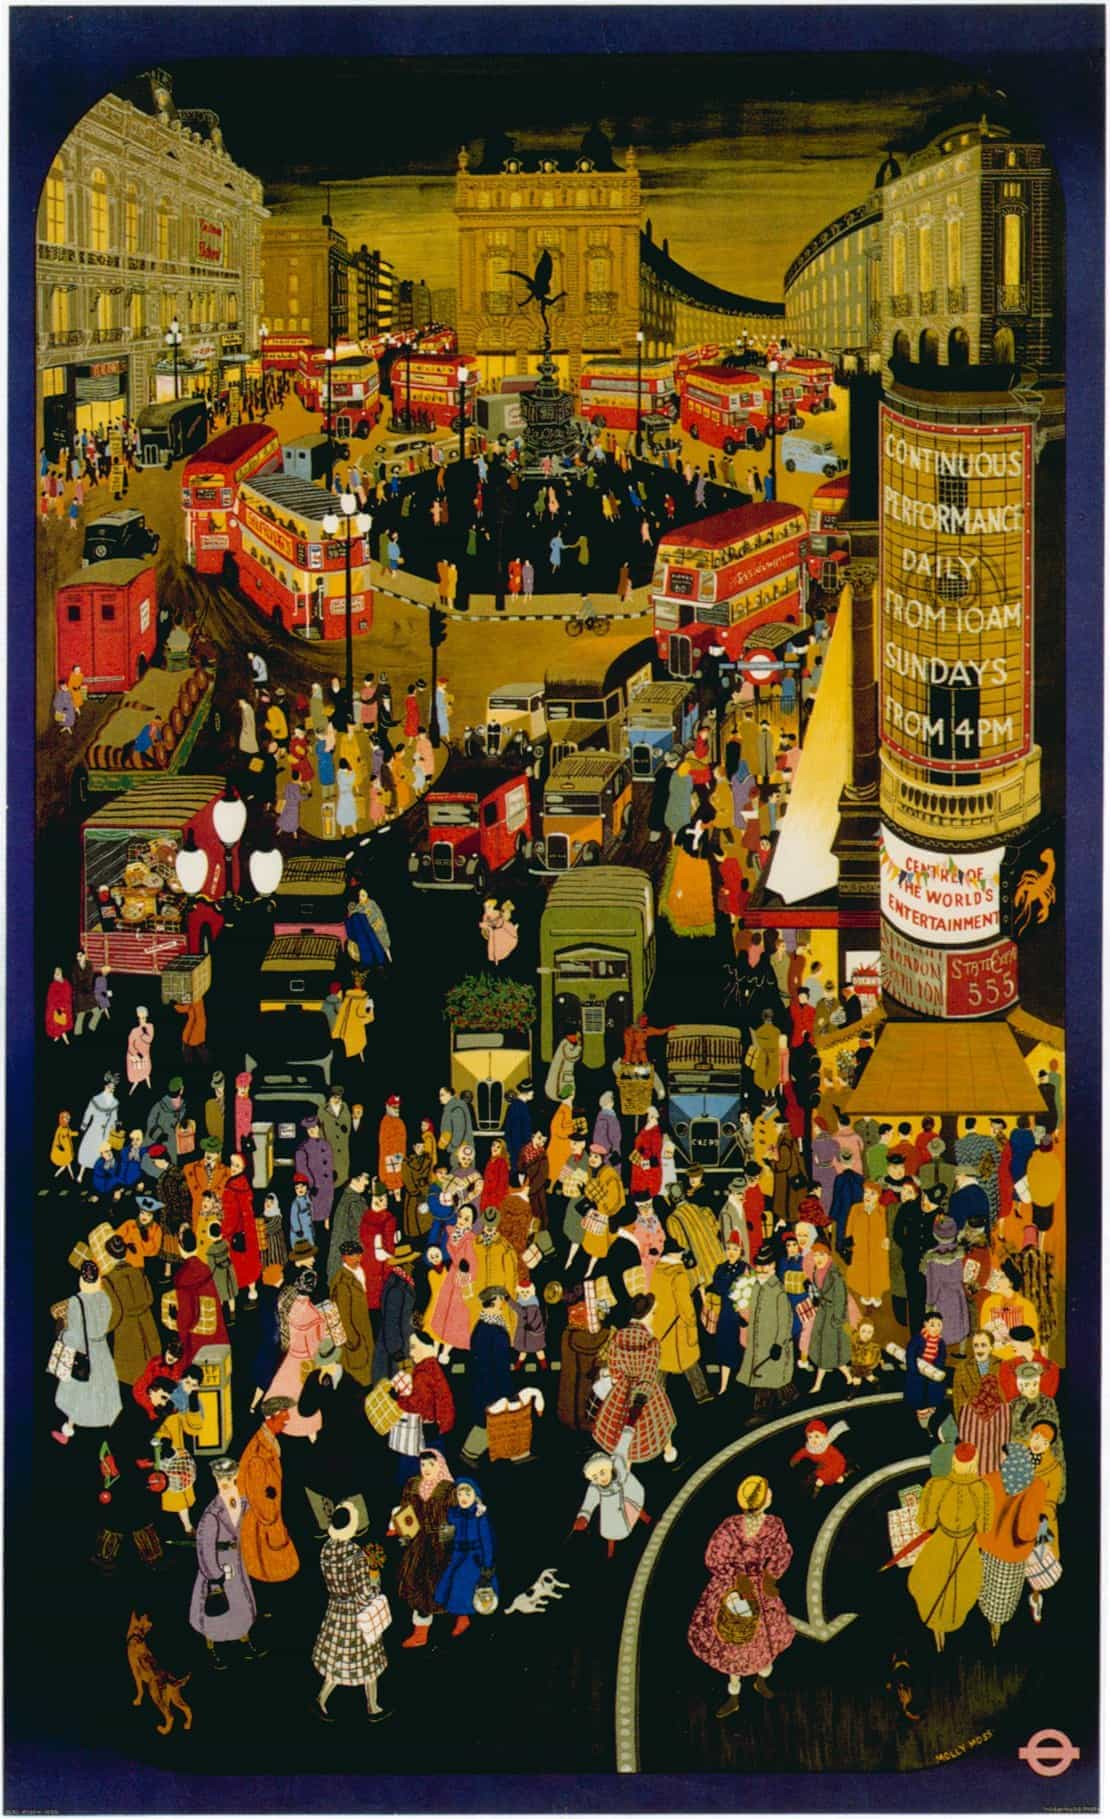 London Underground Advertising Posters: Out and About ...